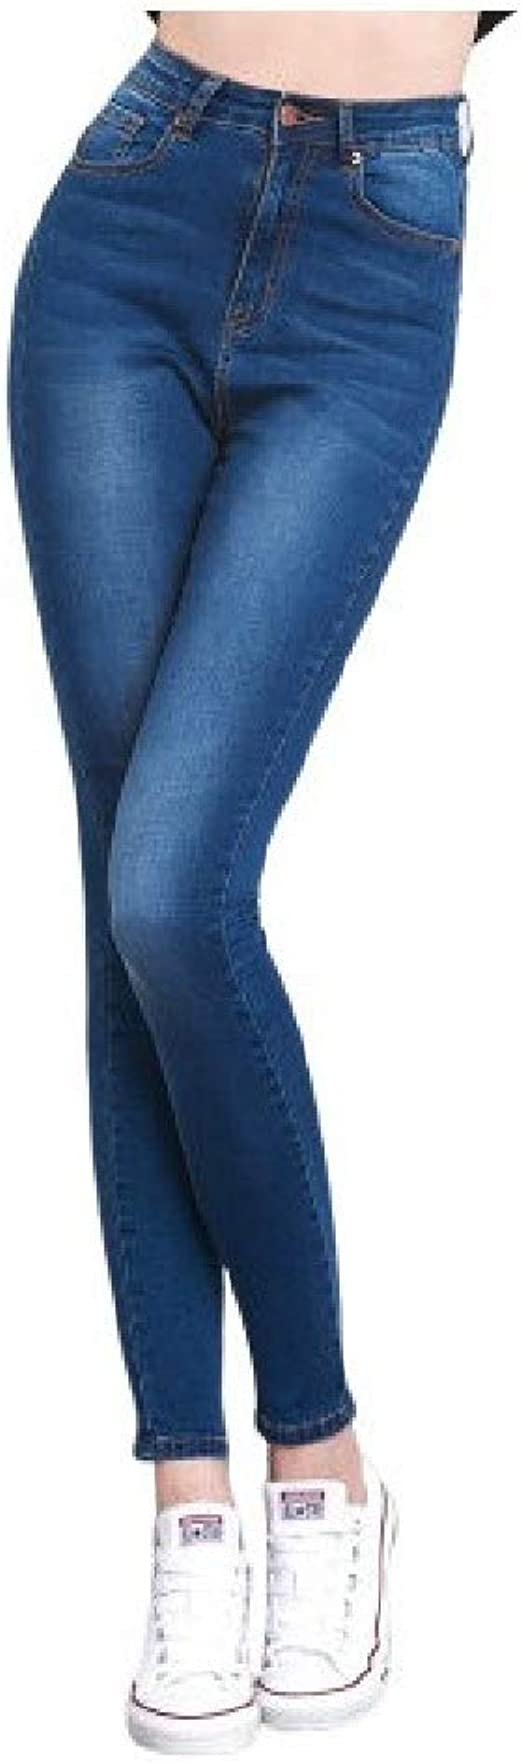 Nicellyer Women Plus Size Pocketed Ombre High Waisted Stretch Wash Comfy Denim Jeans